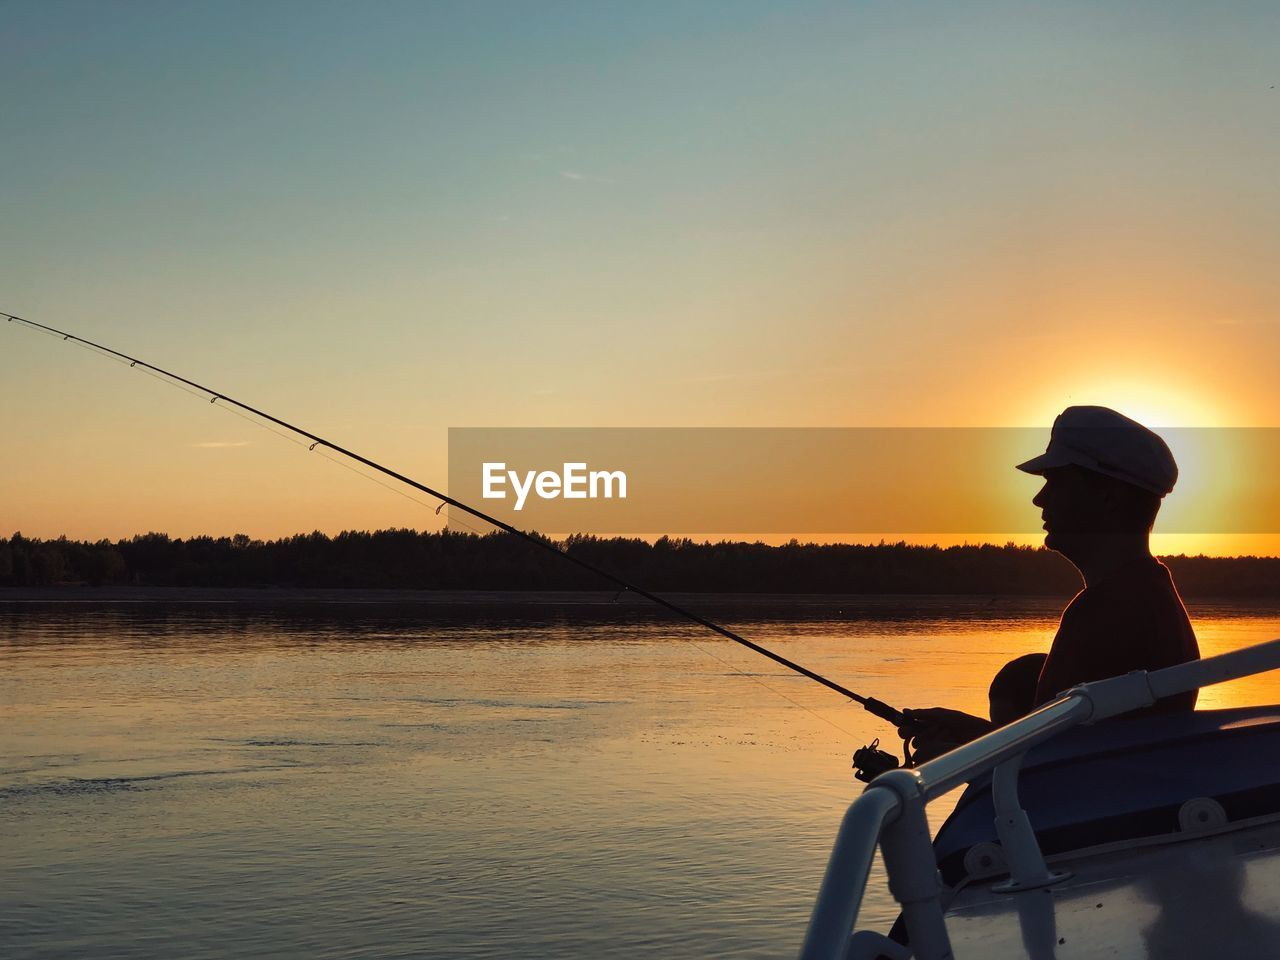 water, sunset, sky, fishing, rod, fishing rod, one person, real people, orange color, silhouette, activity, scenics - nature, leisure activity, beauty in nature, nature, men, hat, lifestyles, outdoors